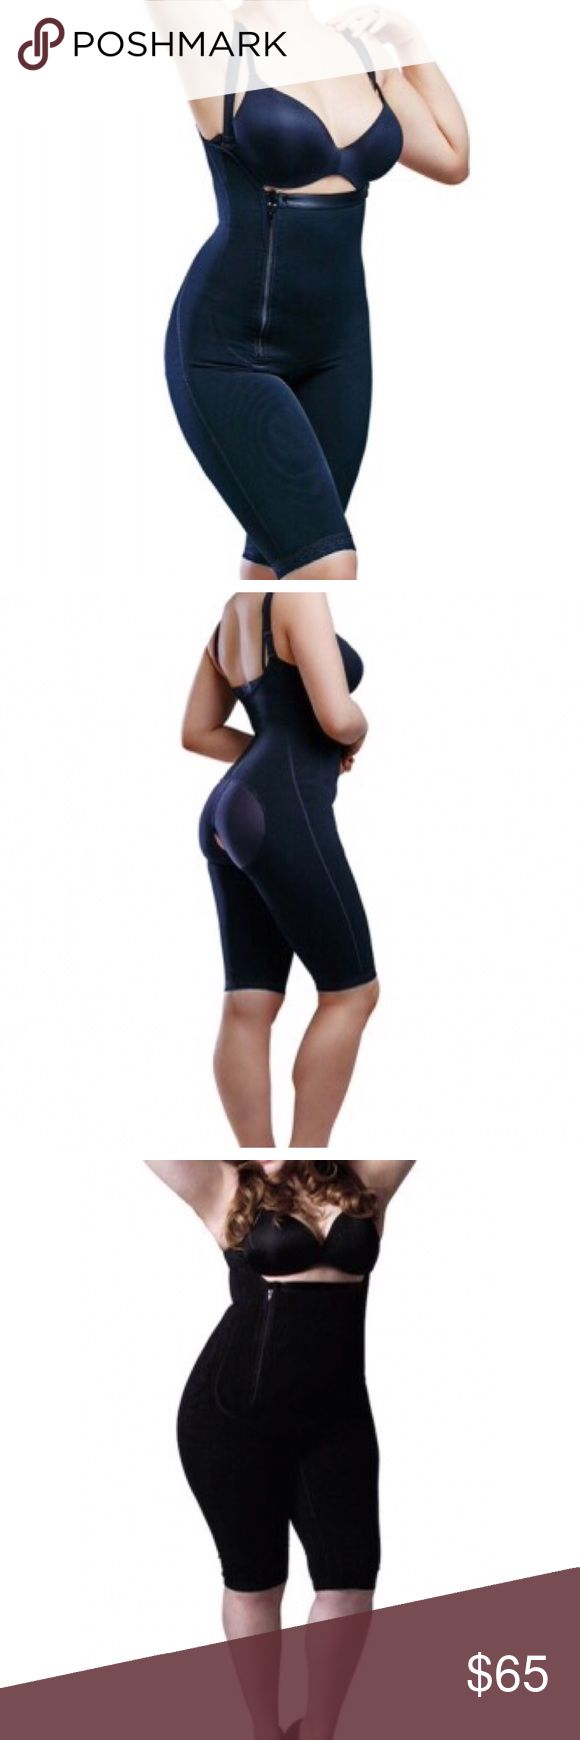 Full Body Garment Shaper Tummy and Thigh Control Full Body Garment Shaper with zipper closure and open crotch to use the bathroom. Garment runs true to size with stretch. Raises buttock as well. Please feel free to ask any questions. Intimates & Sleepwear Shapewear